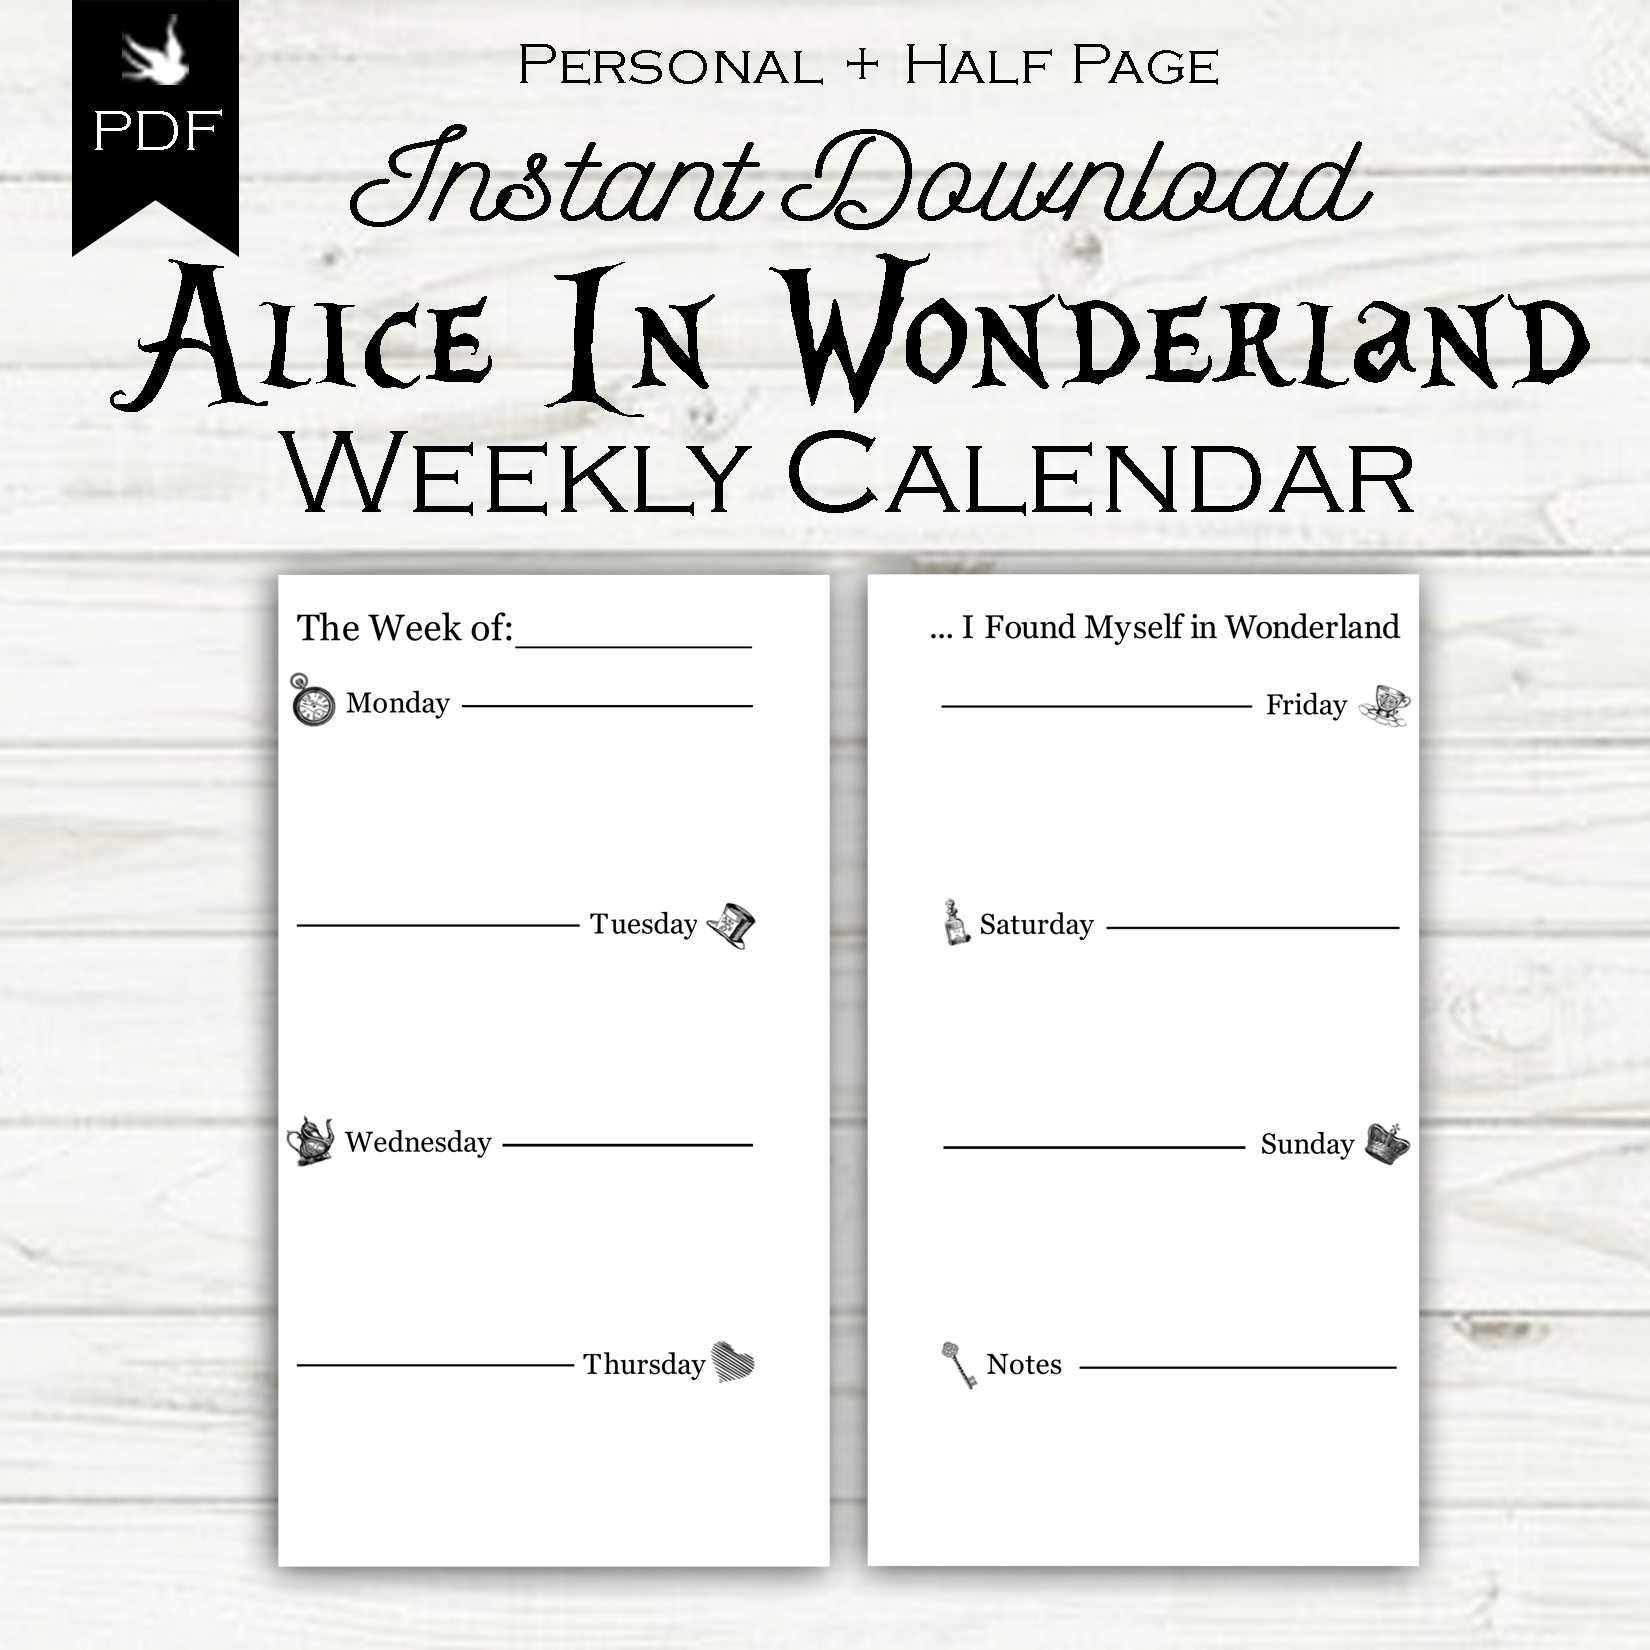 Week On Two Pages - Alice In Wonderland - Sixth & Sparrow Printable Calendar 8 1/2 X 5.5